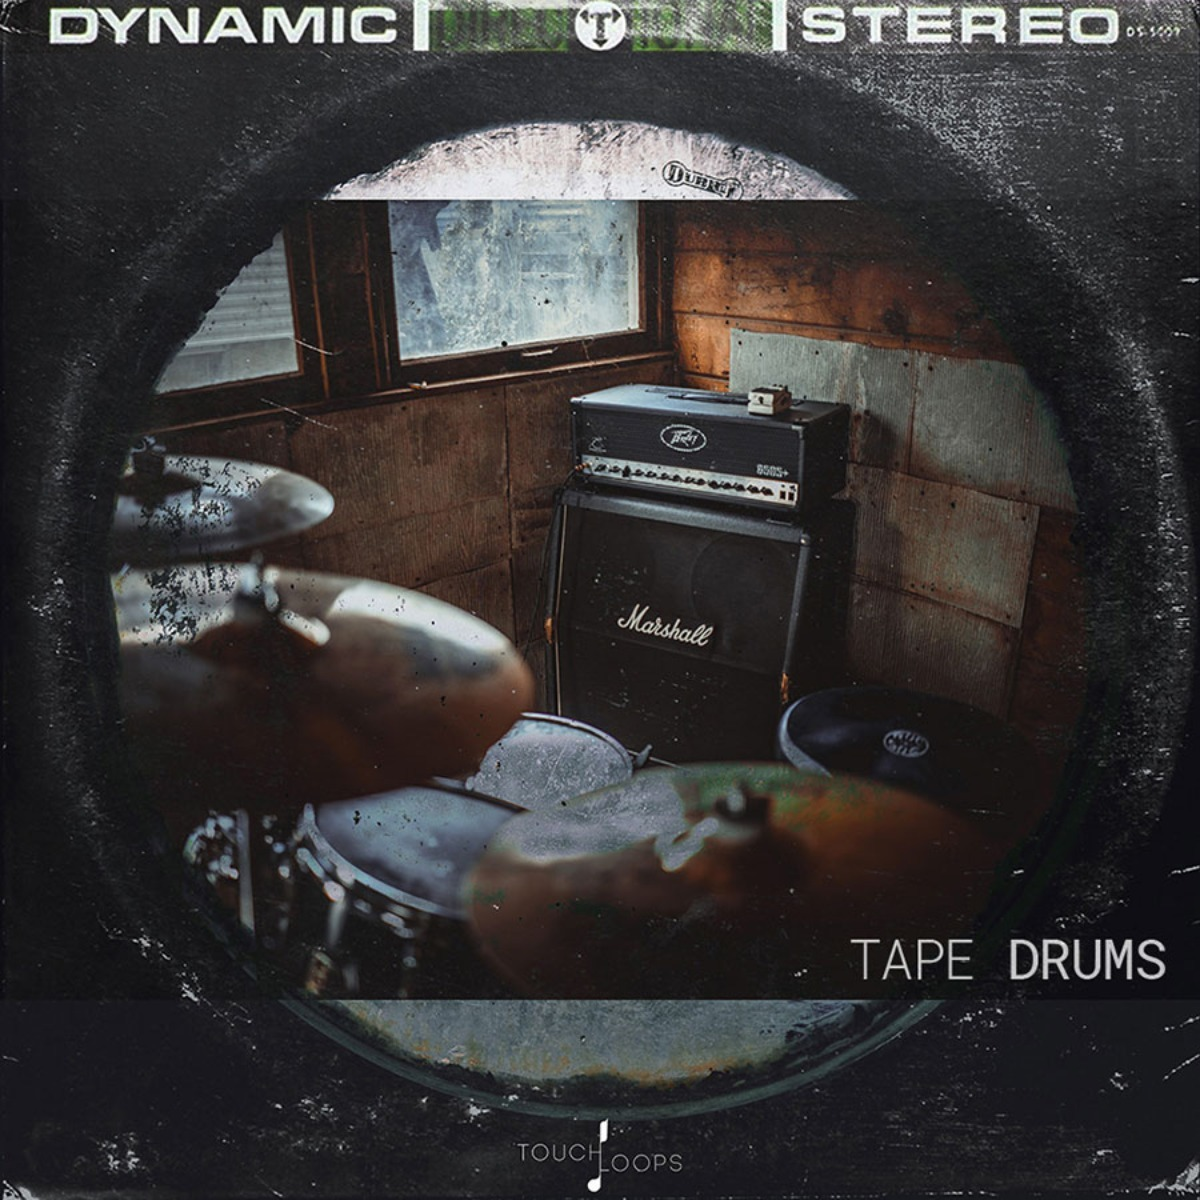 Tape Drums